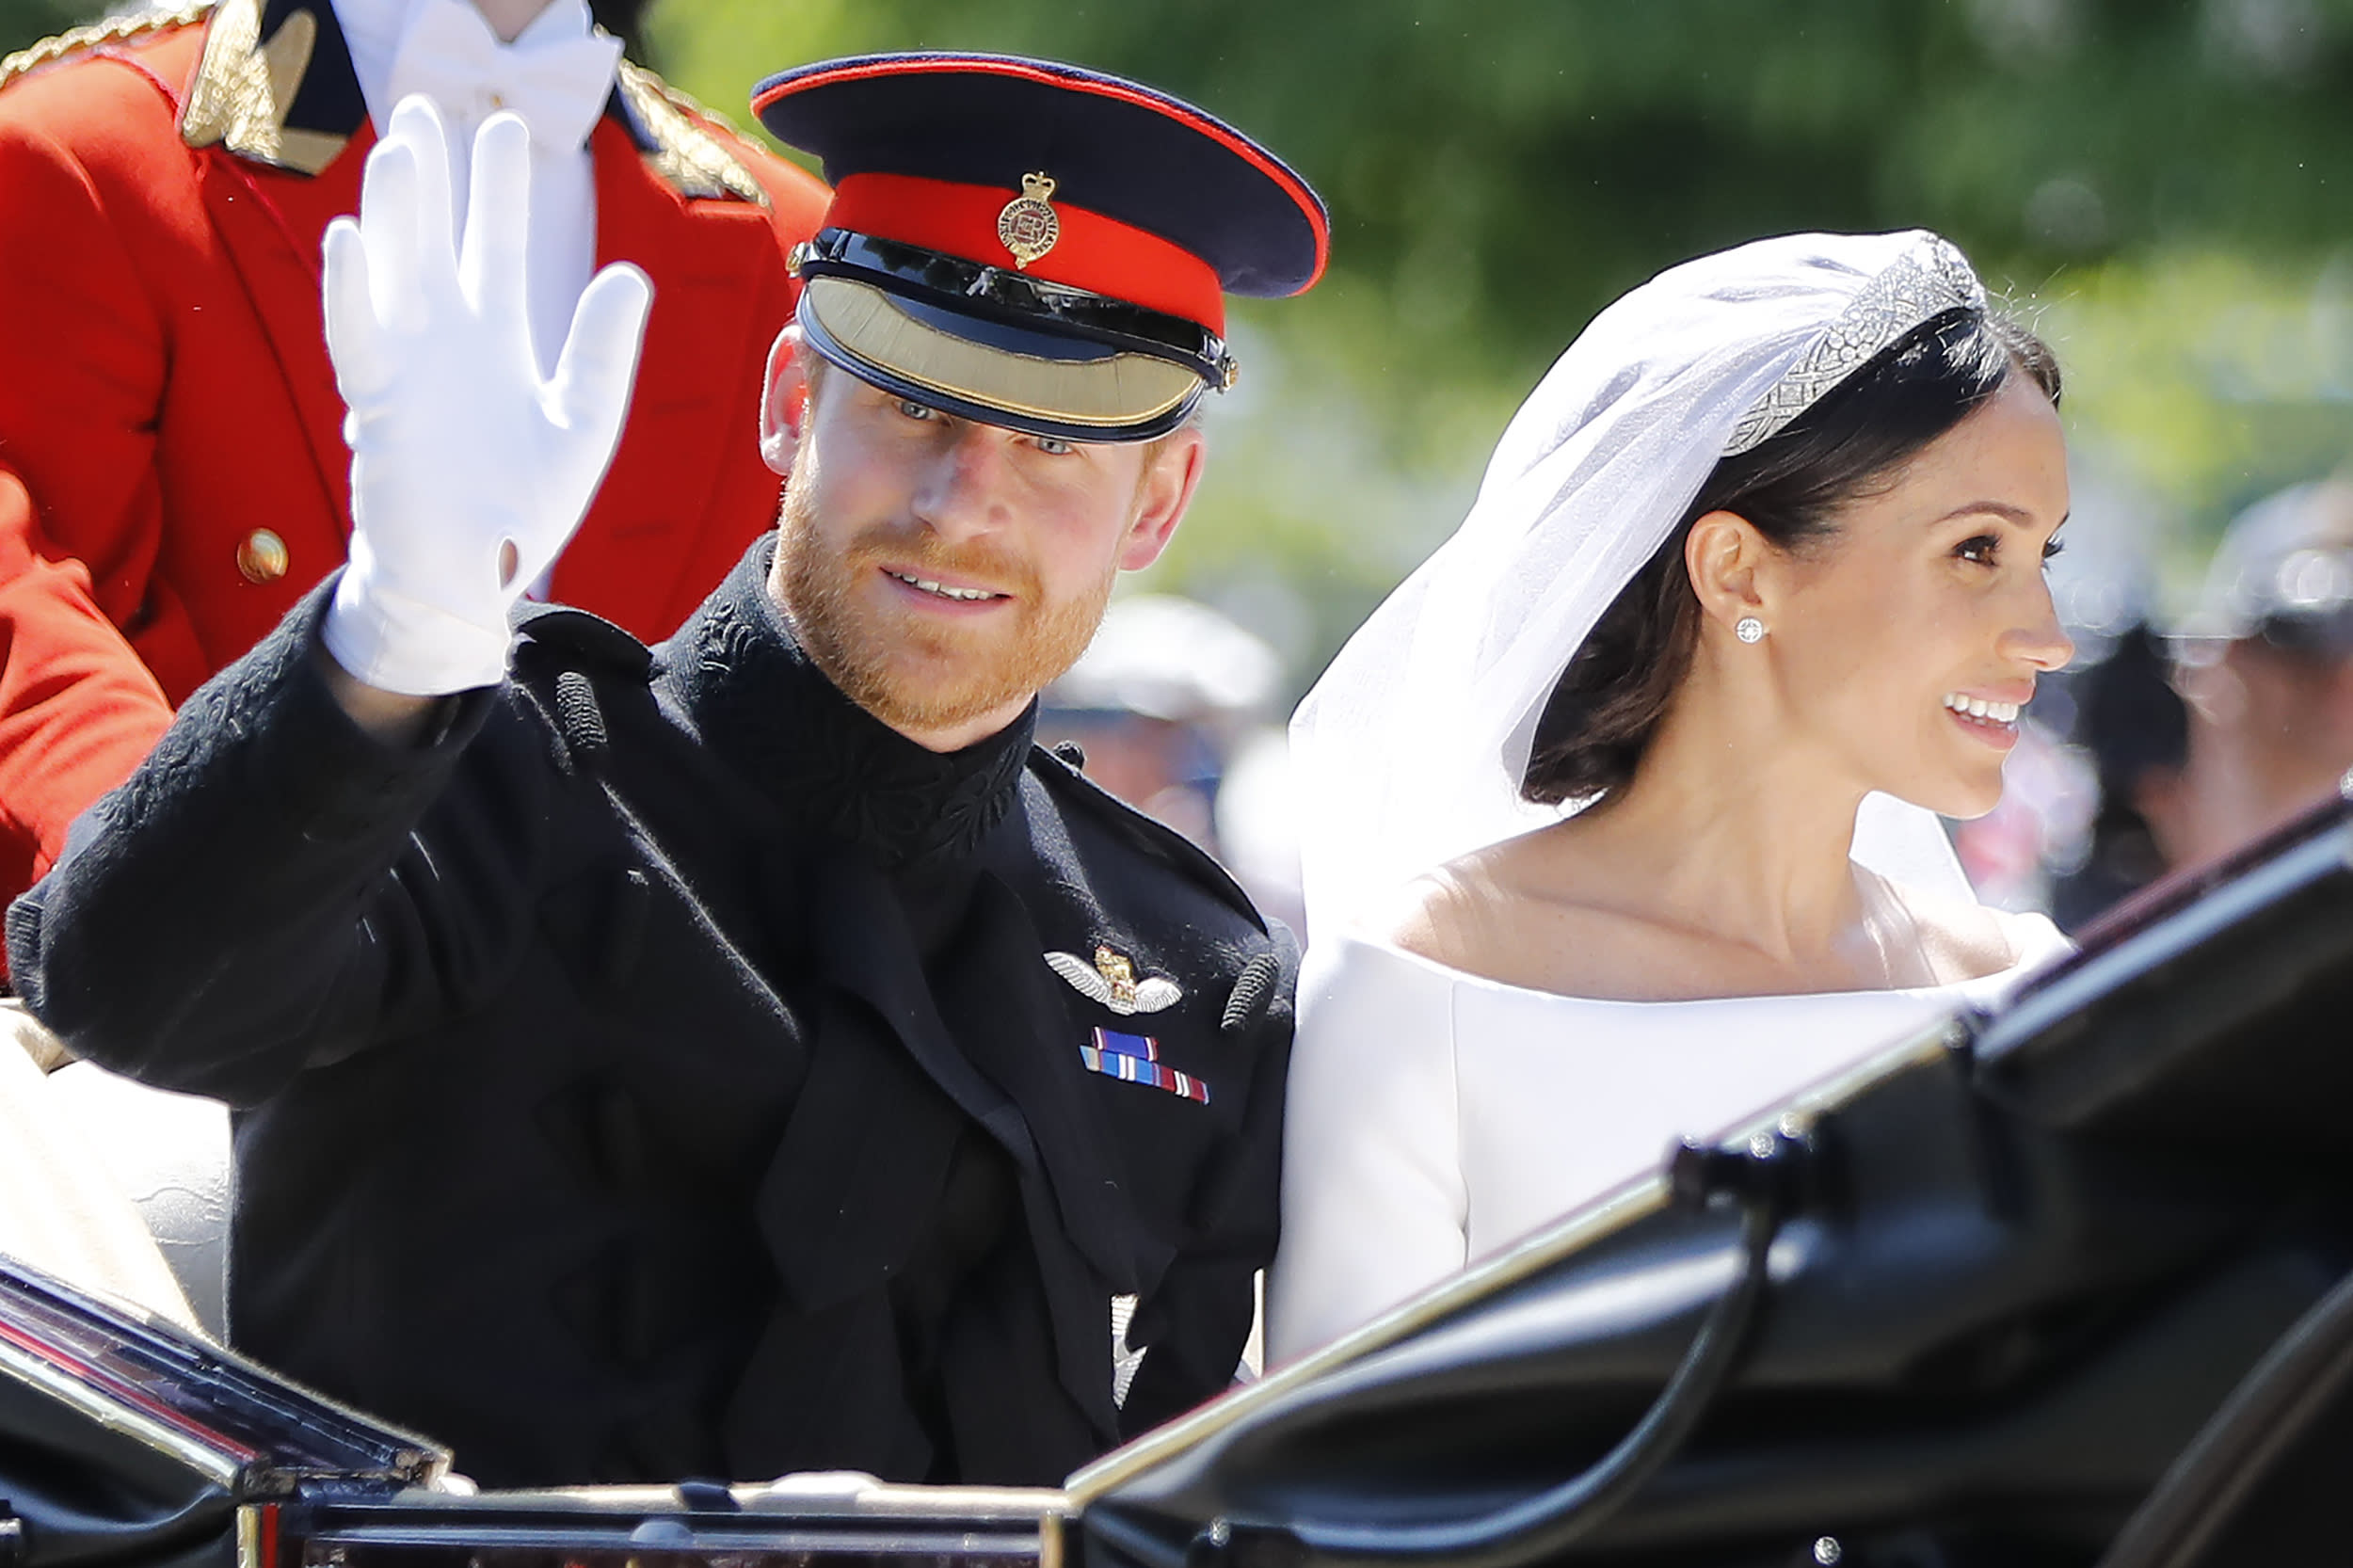 TOPSHOT - Britain's Prince Harry, Duke of Sussex and his wife Meghan, Duchess of Sussex wave from the Ascot Landau Carriage during their carriage procession on the Long Walk as they head back towards Windsor Castle in Windsor, on May 19, 2018 after their wedding ceremony. (Photo by Tolga AKMEN / AFP)        (Photo credit should read TOLGA AKMEN/AFP/Getty Images)